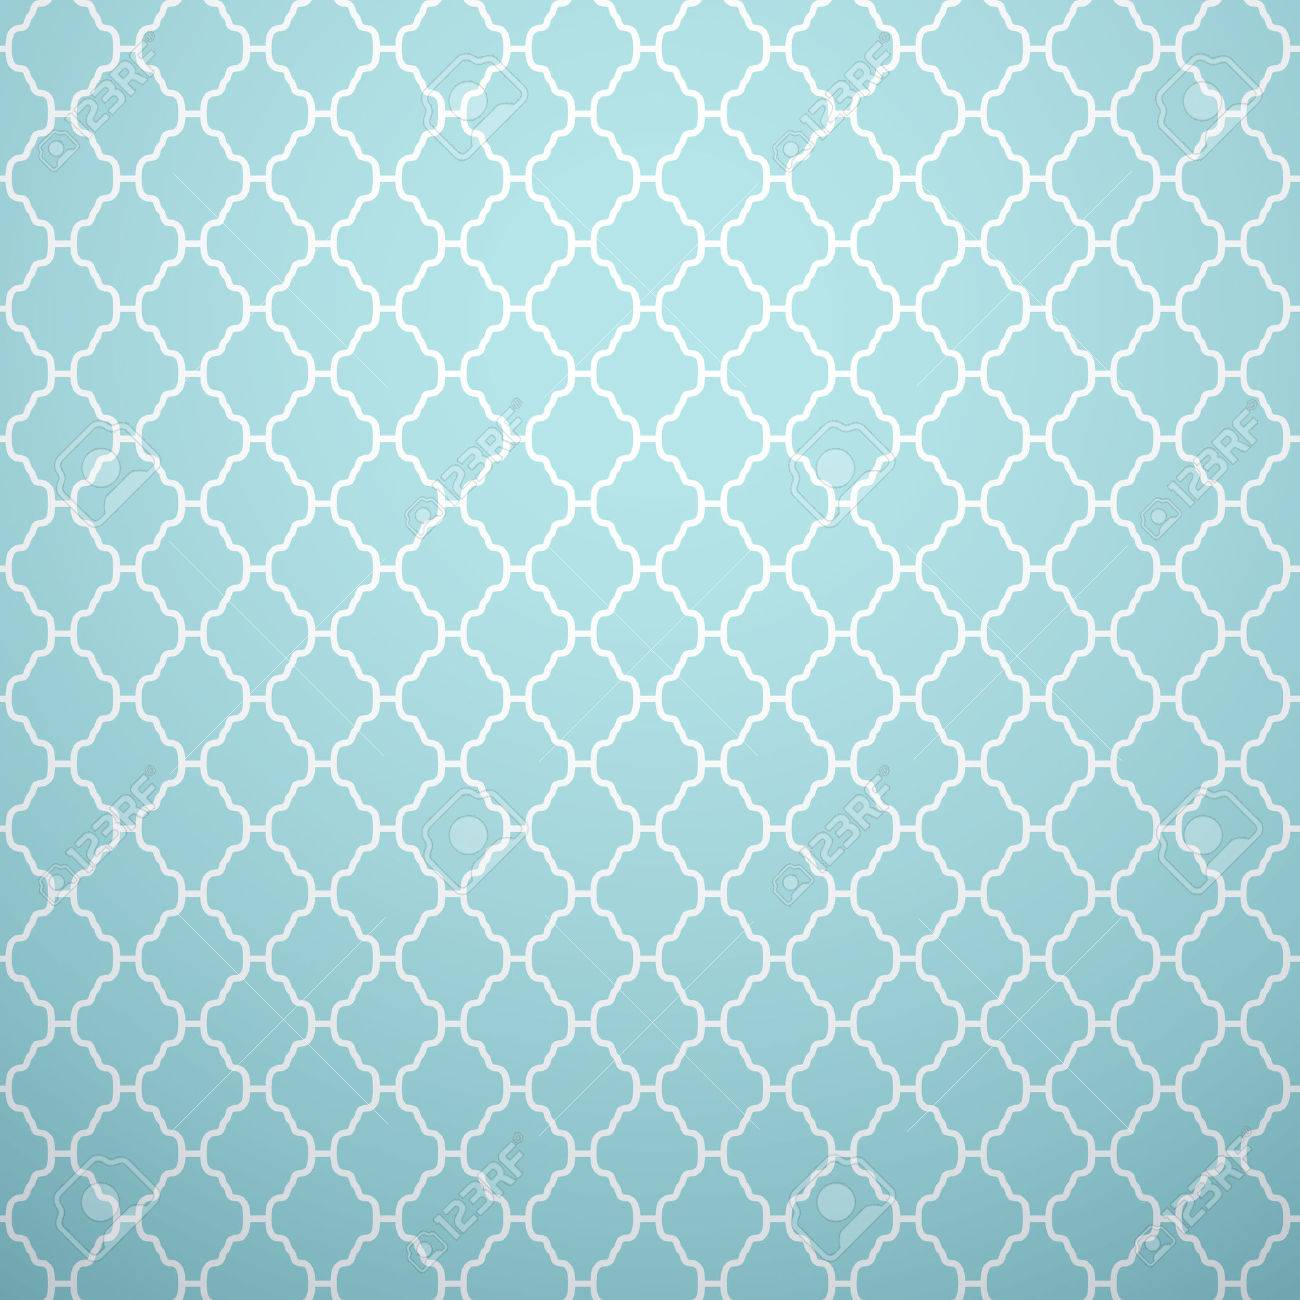 Endless Texture For Wallpaper Fill Web Page Background Surface Monochrome Geometric Ornament Blue And White Shabby Pastel Colors